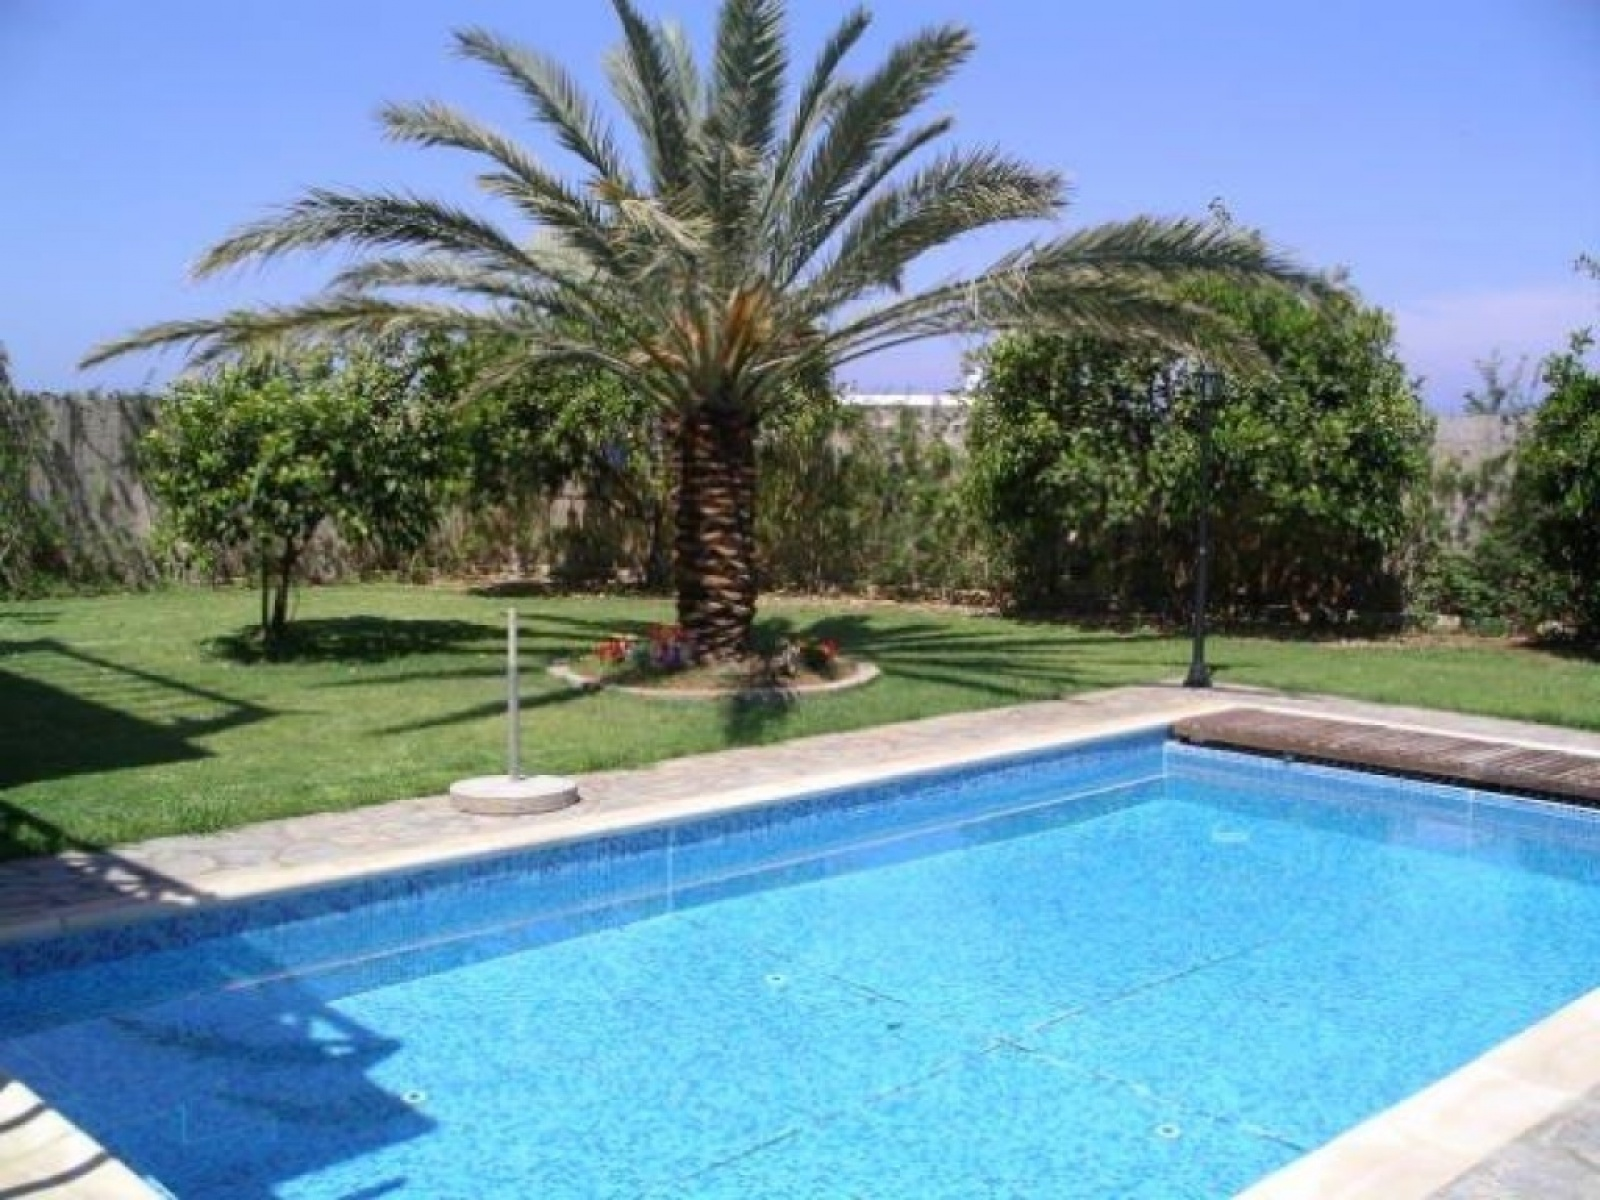 Residential Villa - New Dimata Villa For Sale